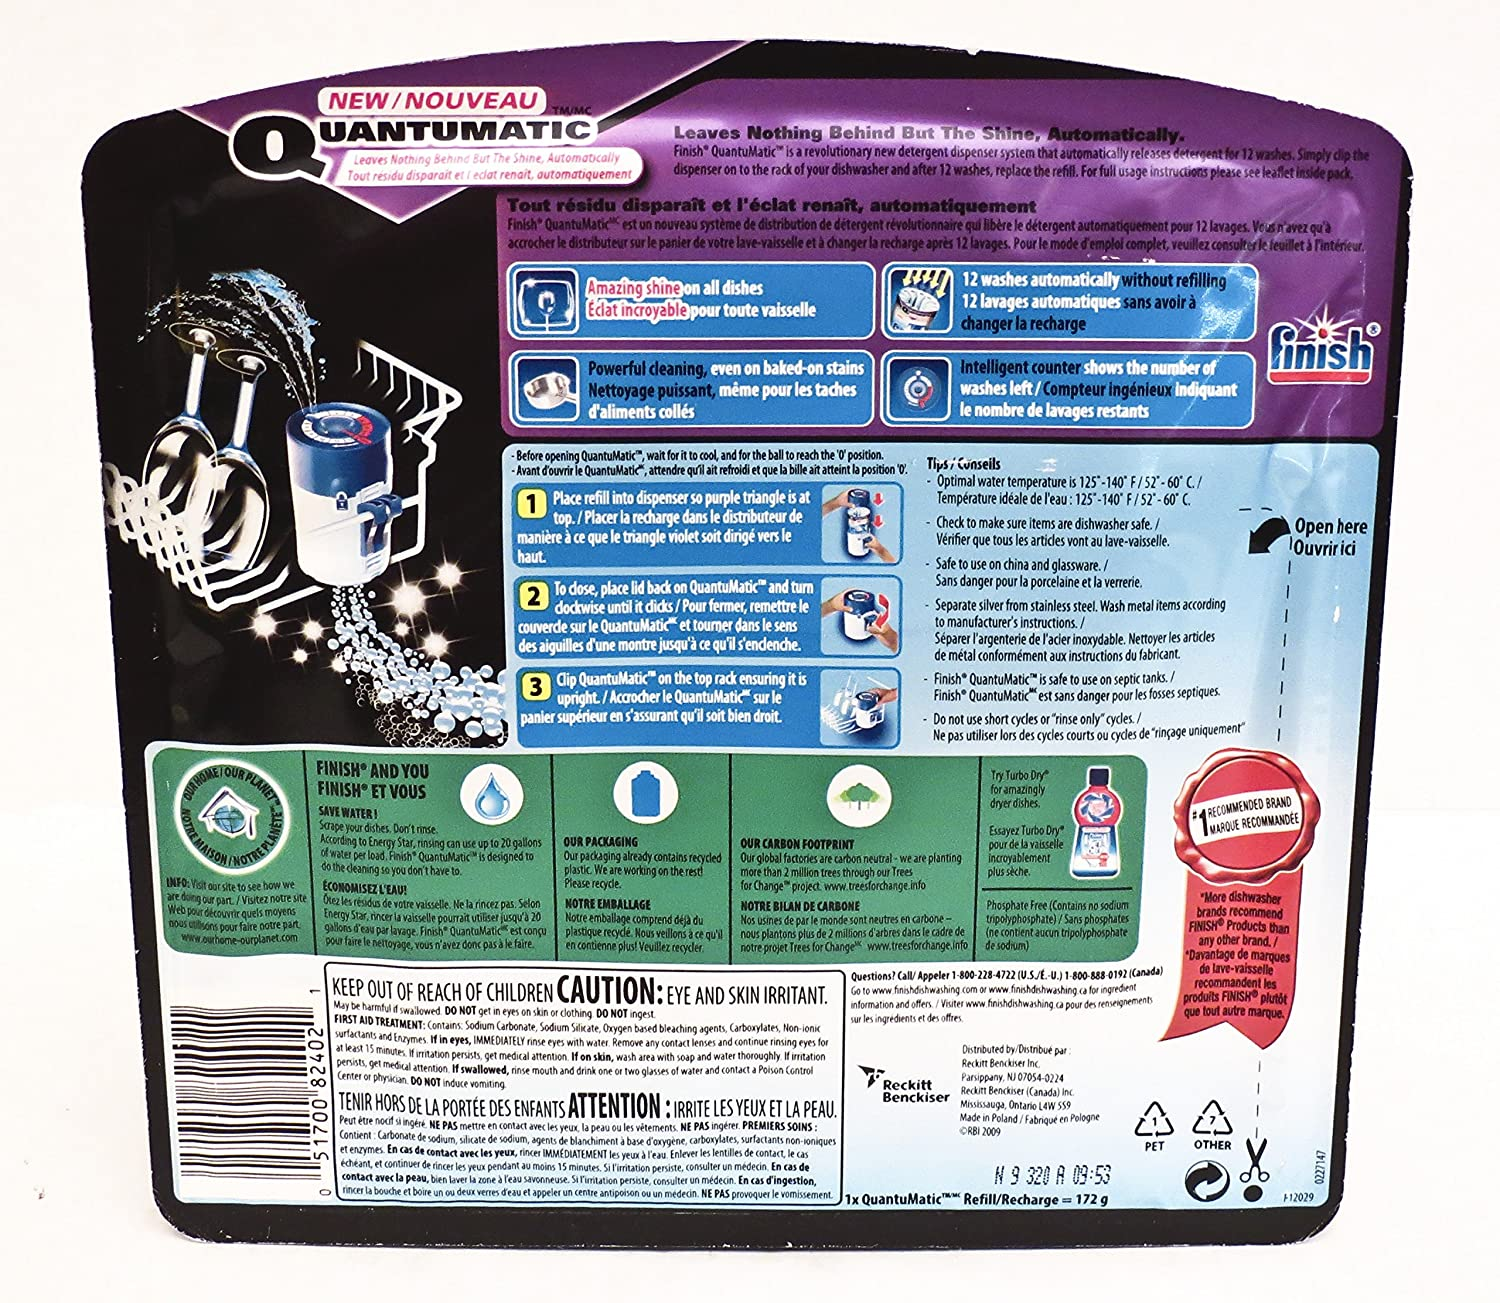 Amazon.com: Finish Quantumatic Automatic Dishwasher Detergent Dispenser System By Finish: Industrial & Scientific